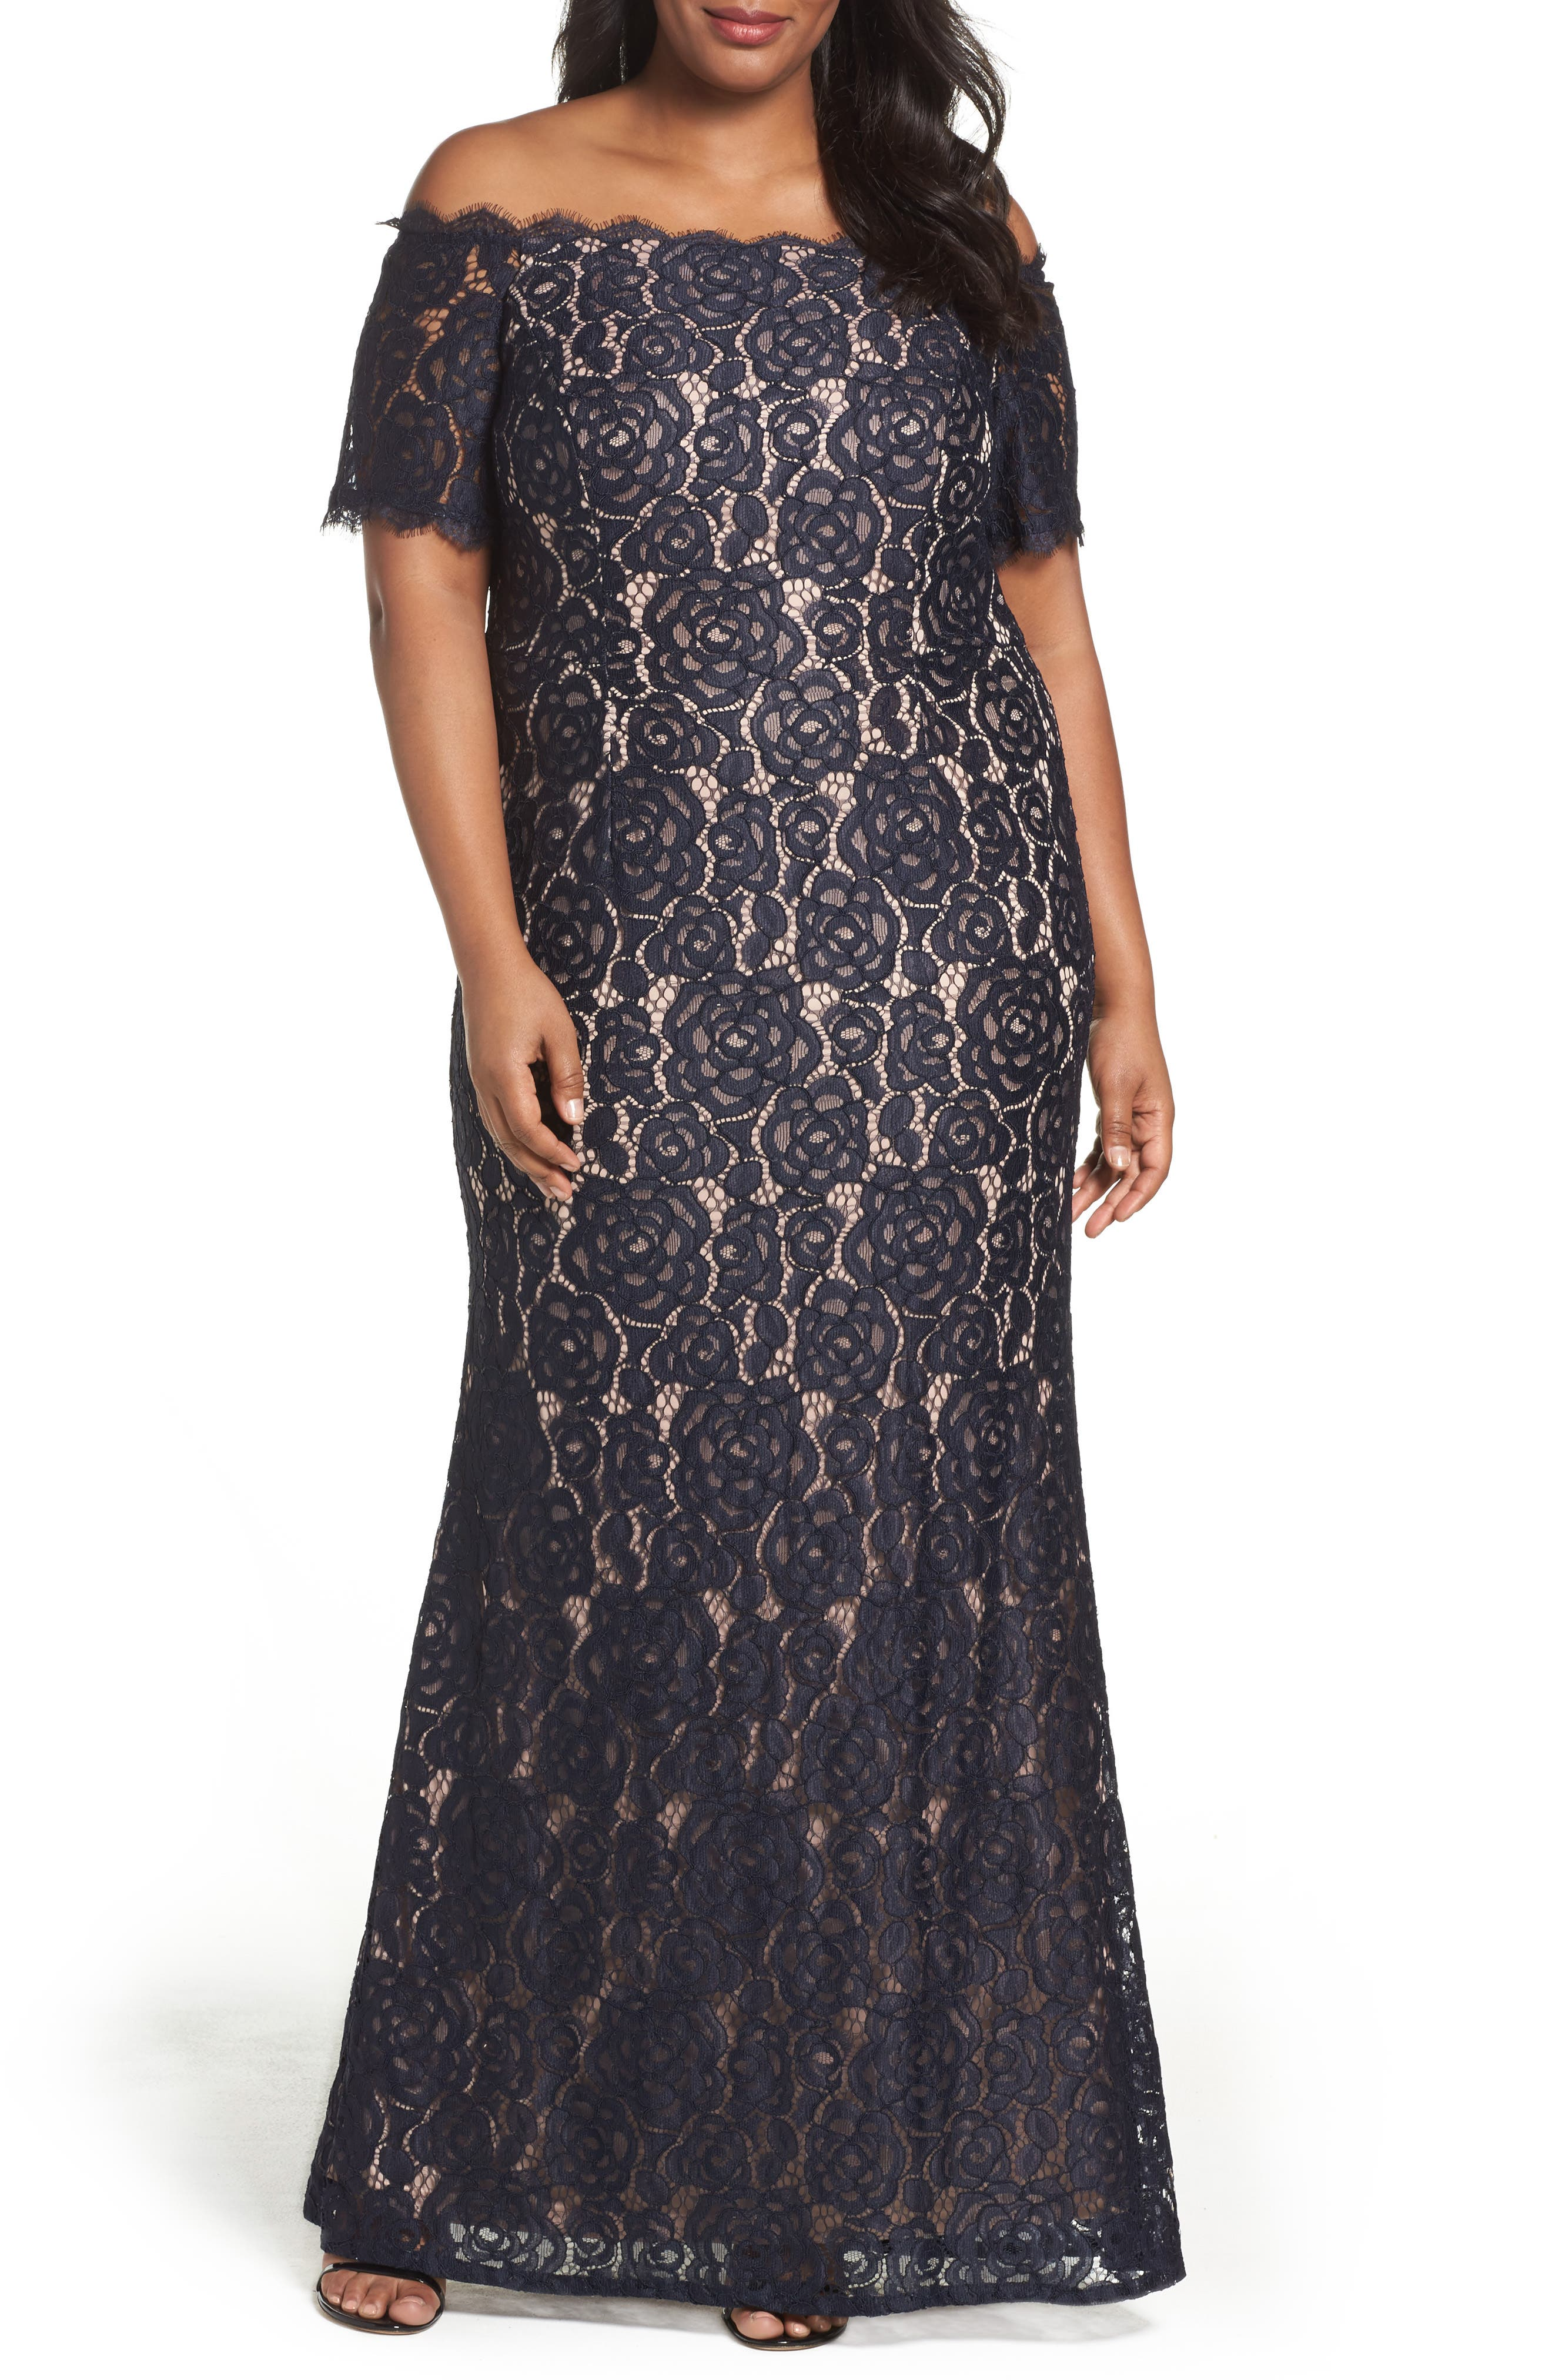 Adrianna Papell Lace Off the Shoulder Mermaid Gown (Plus Size)